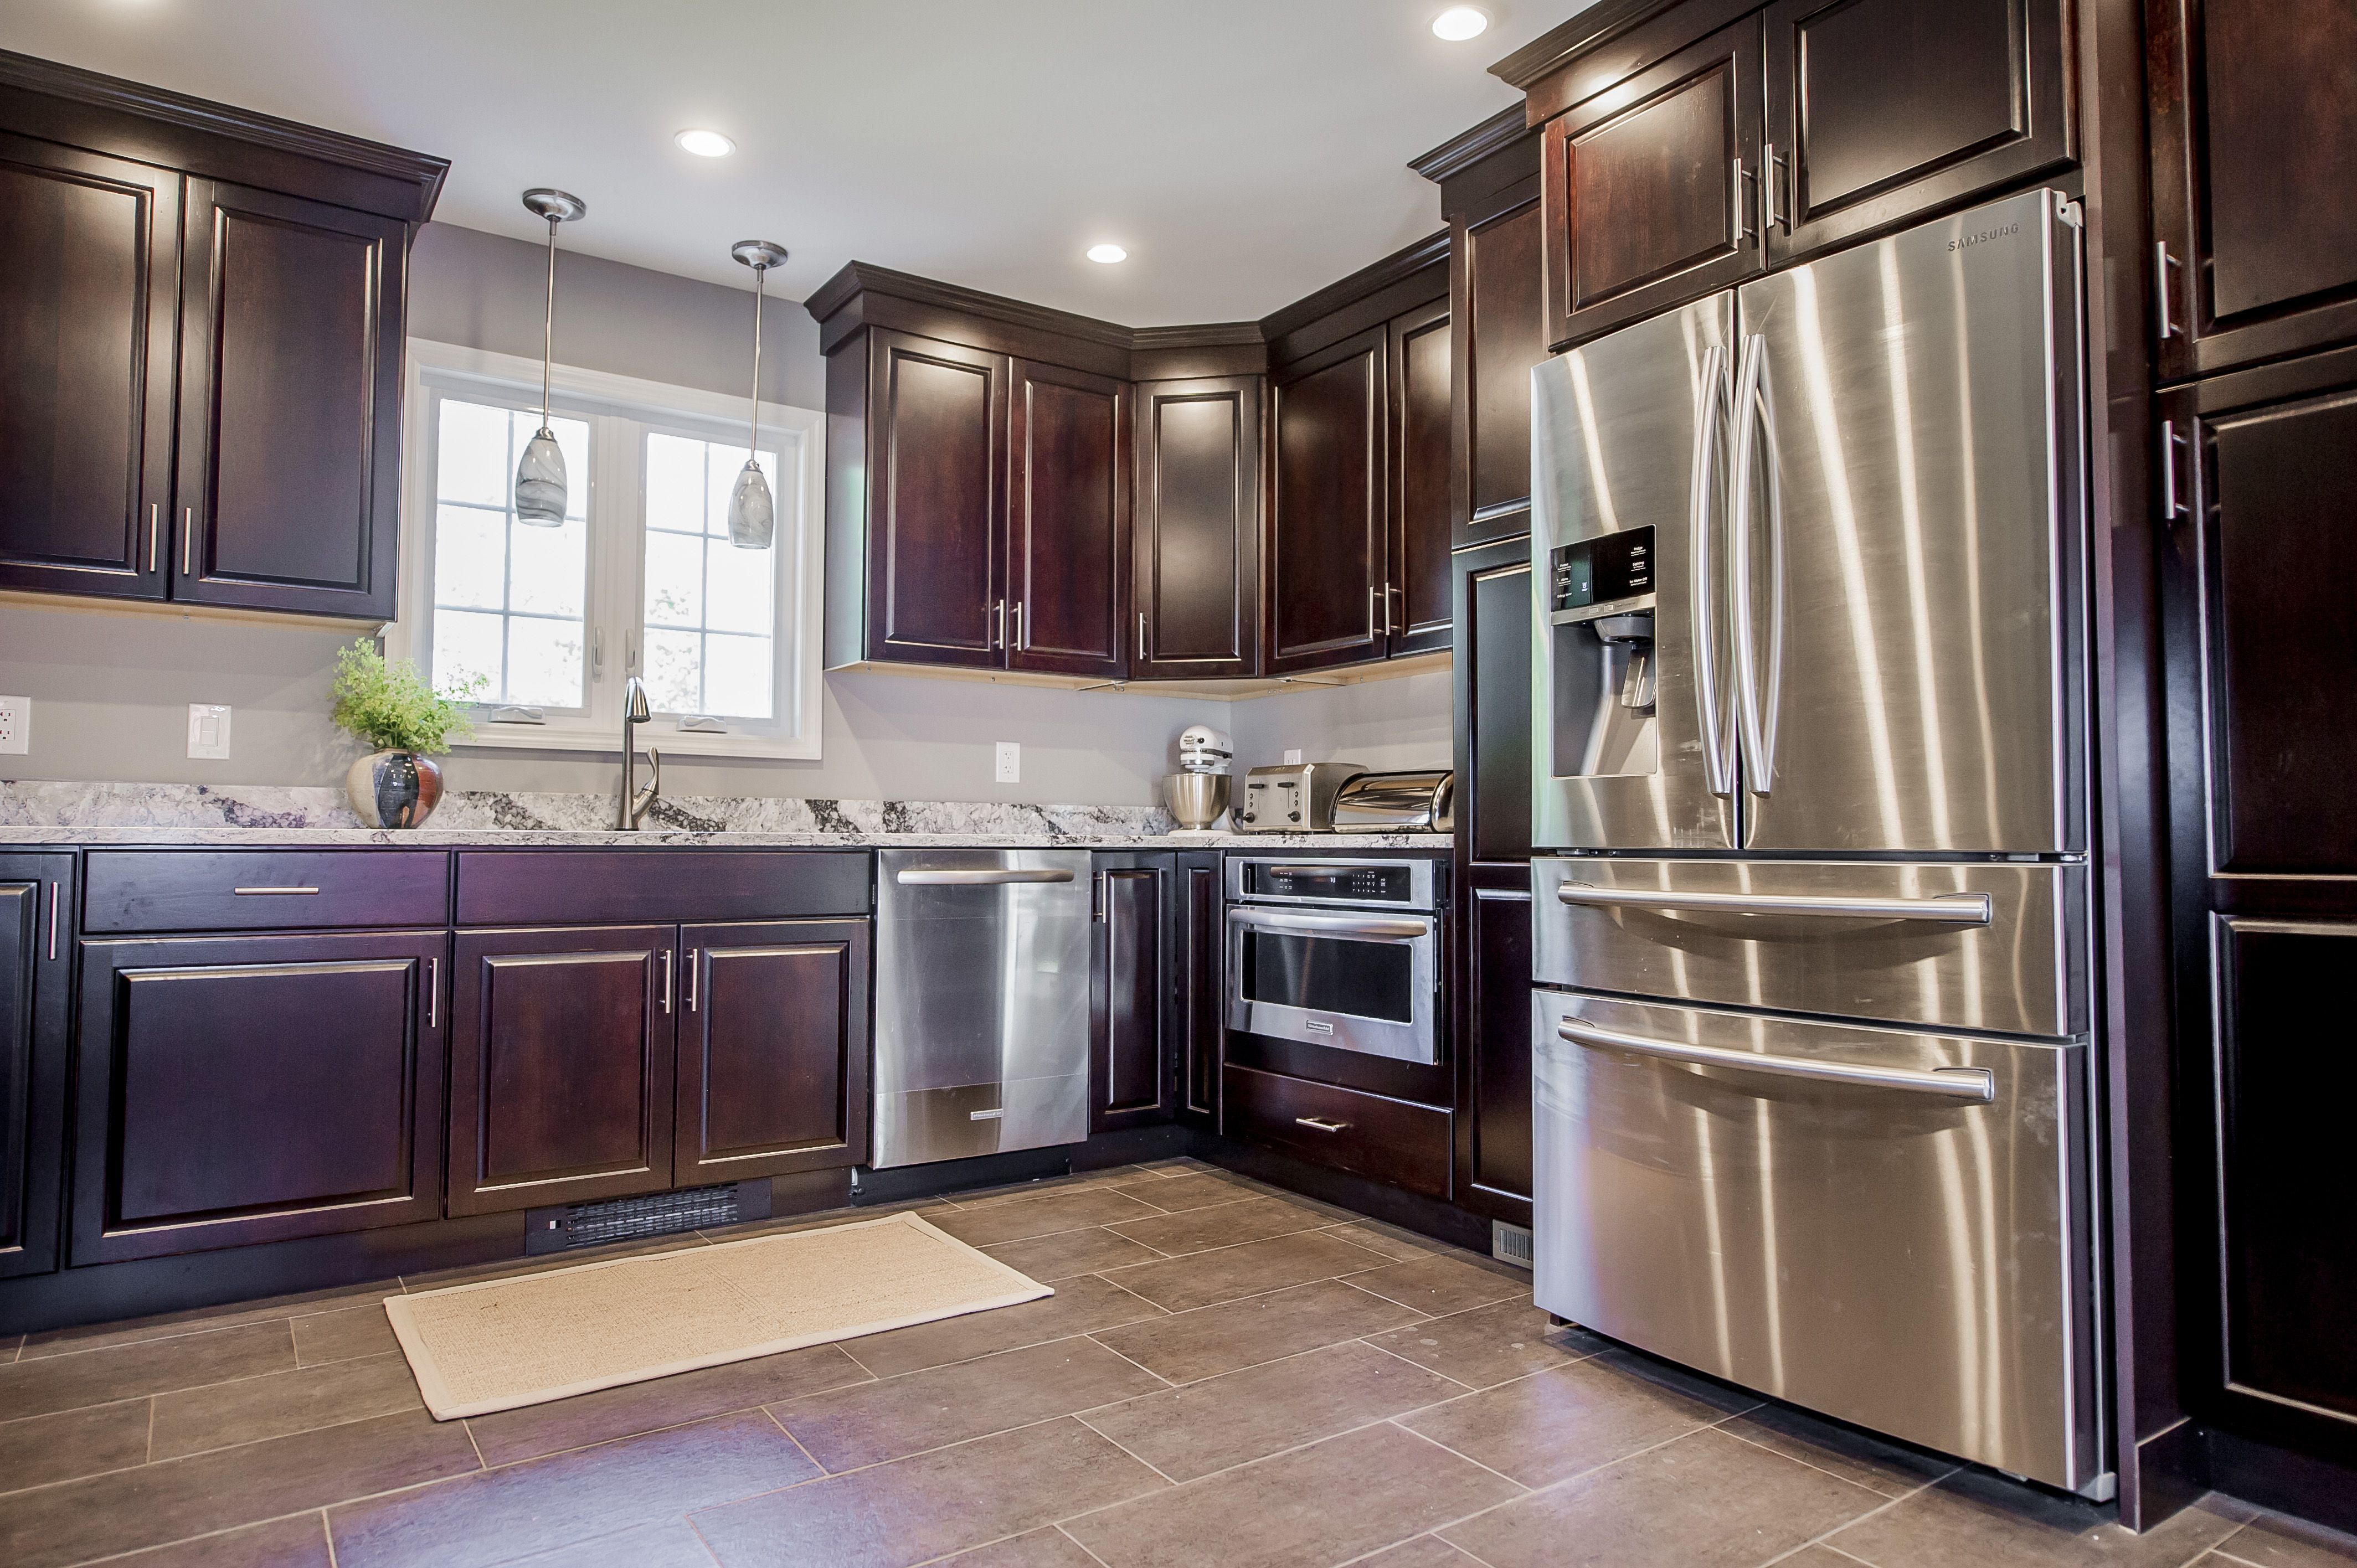 Pin By Razzano Homes And Remodelers On Kitchens By Razzano Homes With Images Kitchen Remodel Kitchen Remodel Design Kitchen Remodel Cost